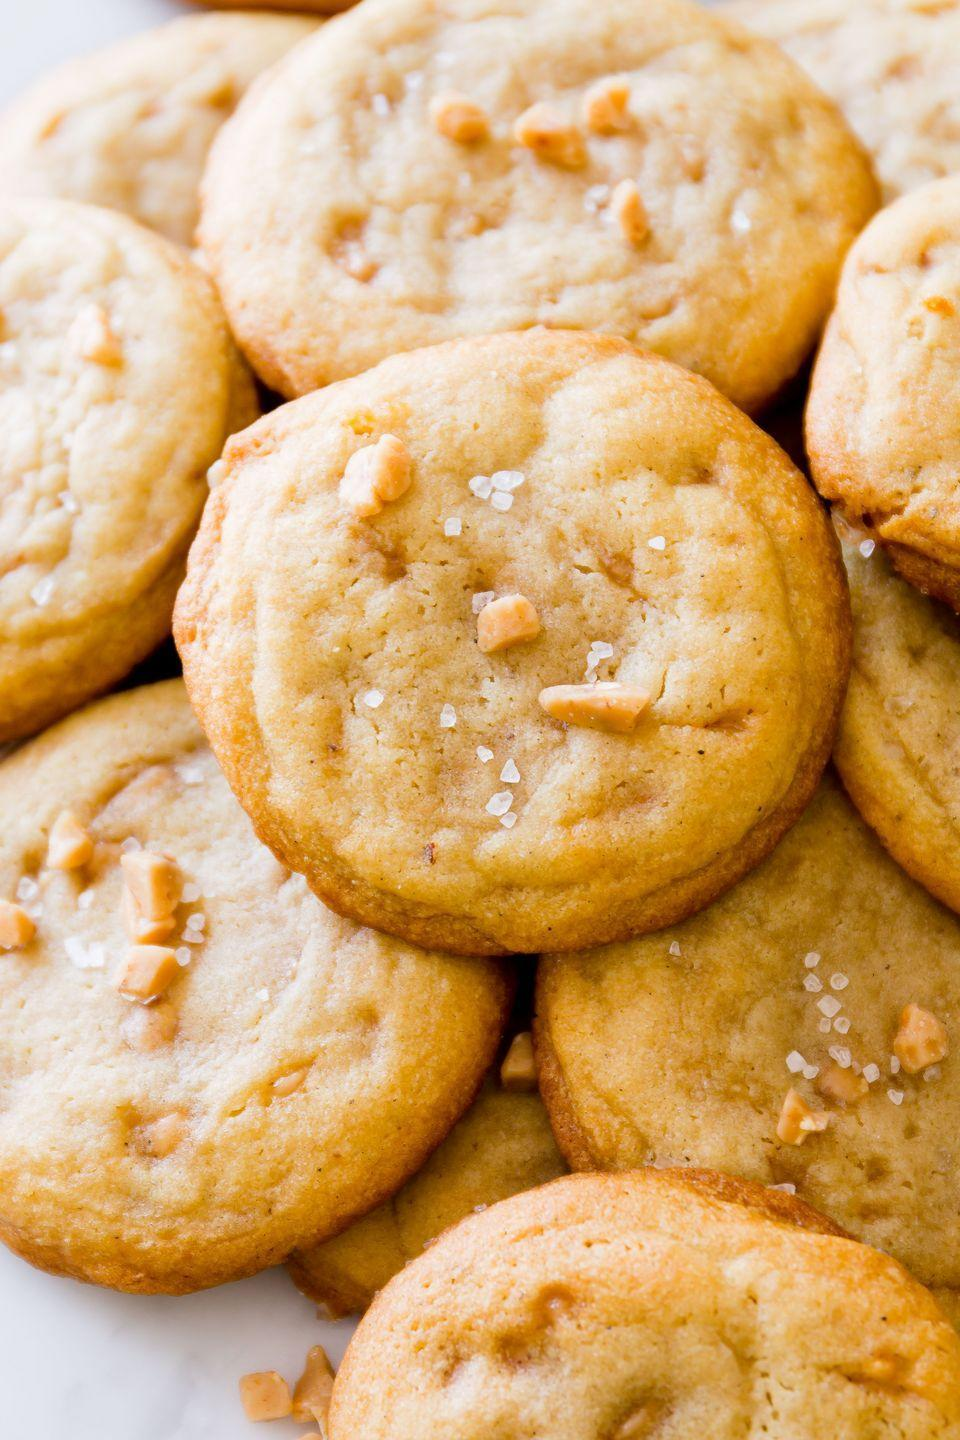 """<p>These cookies have mass appeal thanks to their supreme buttery flavor, the bits of toffee in every bite, and the sprinkle of sea salt on top. </p><p>Get the recipe from <a href=""""https://www.delish.com/cooking/a42774/best-salted-vanilla-toffee-cookies-recipe/"""" rel=""""nofollow noopener"""" target=""""_blank"""" data-ylk=""""slk:Delish"""" class=""""link rapid-noclick-resp"""">Delish</a>.</p>"""